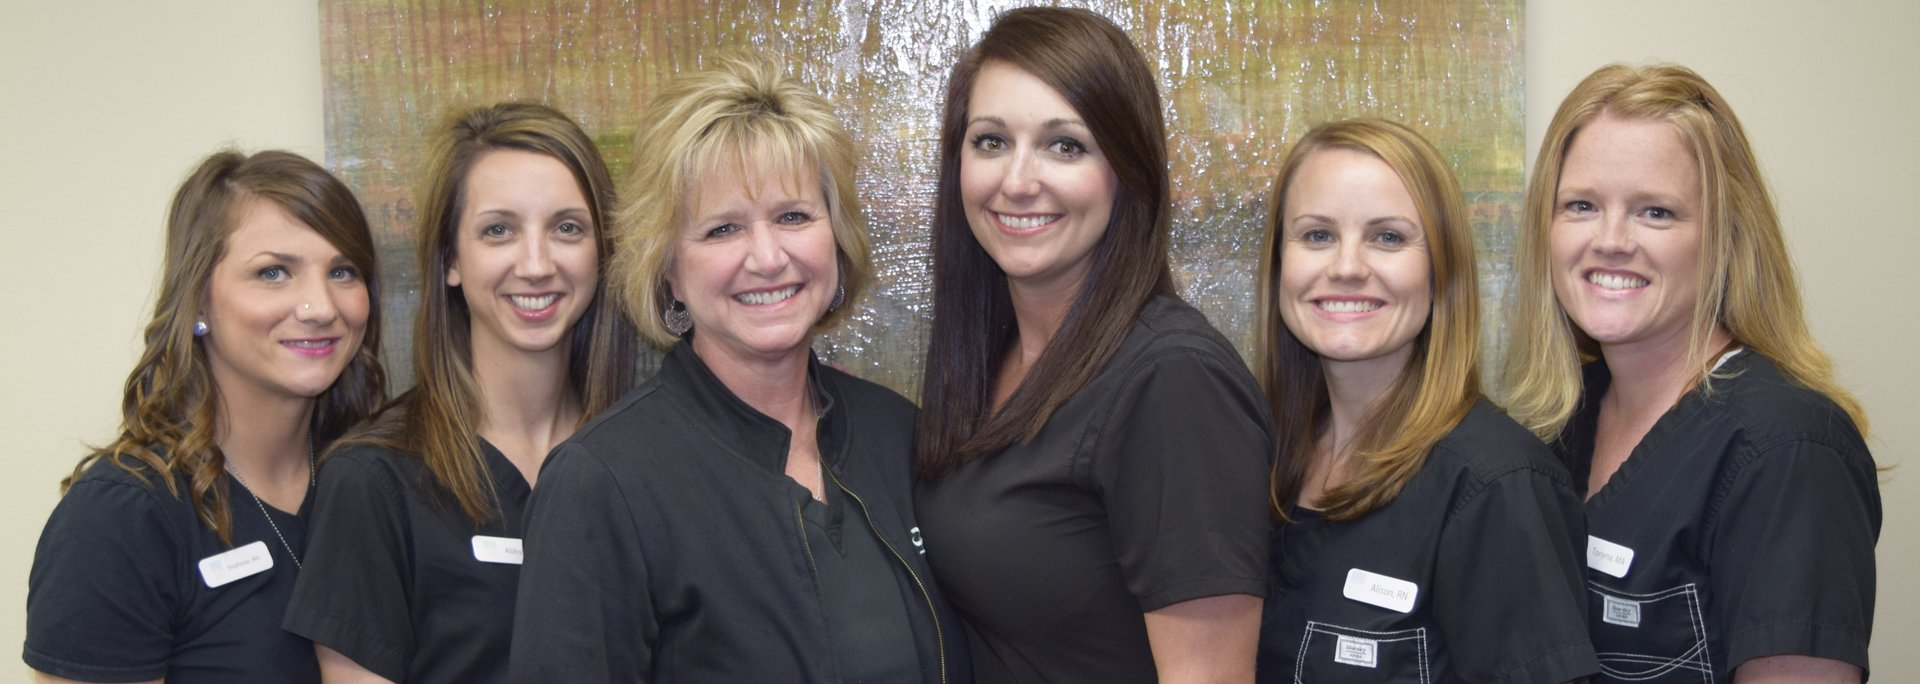 center conway women Get woman's wellness center phone number in conway, sc 235 singleton ridge rd, 29526, hospitals, clinics and surgeons, woman's wellness center reviews.